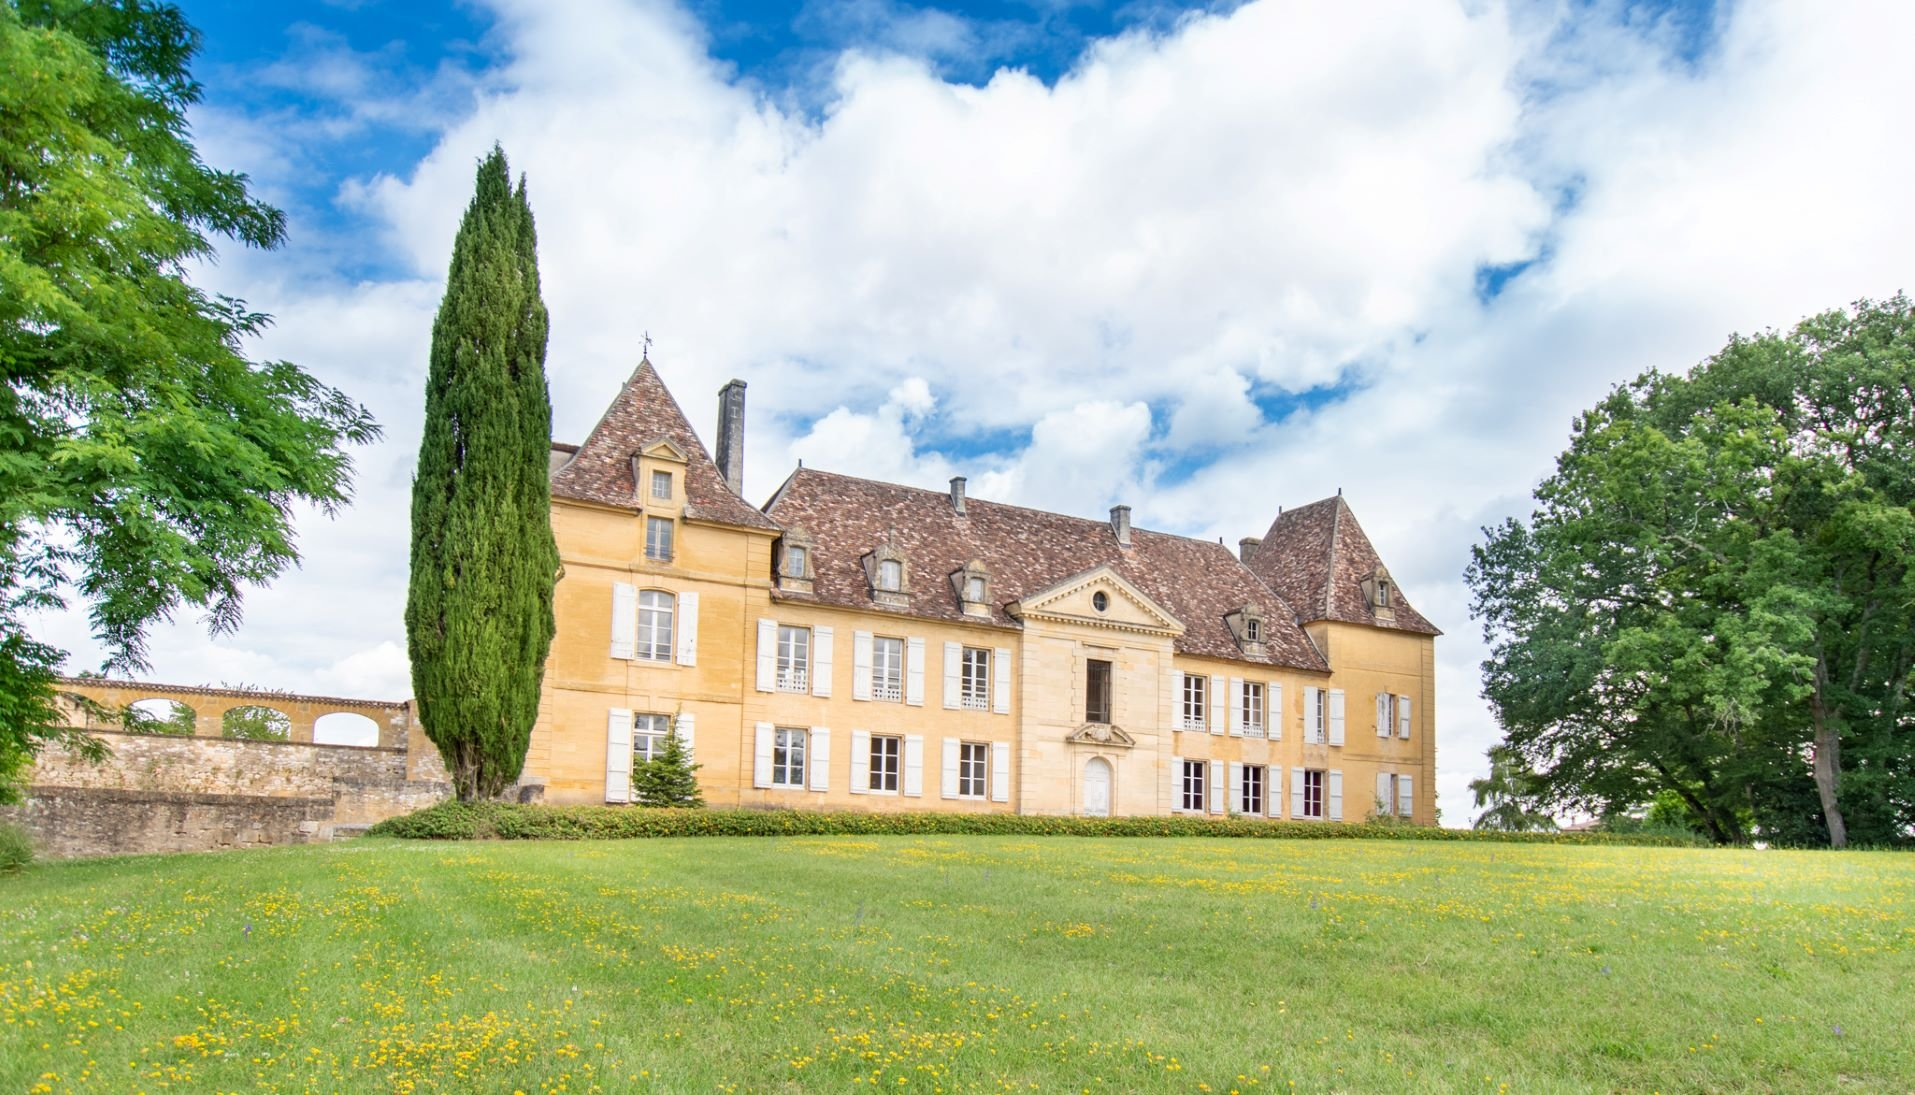 Southwest of France – 18th splendid chateau with outbuildings